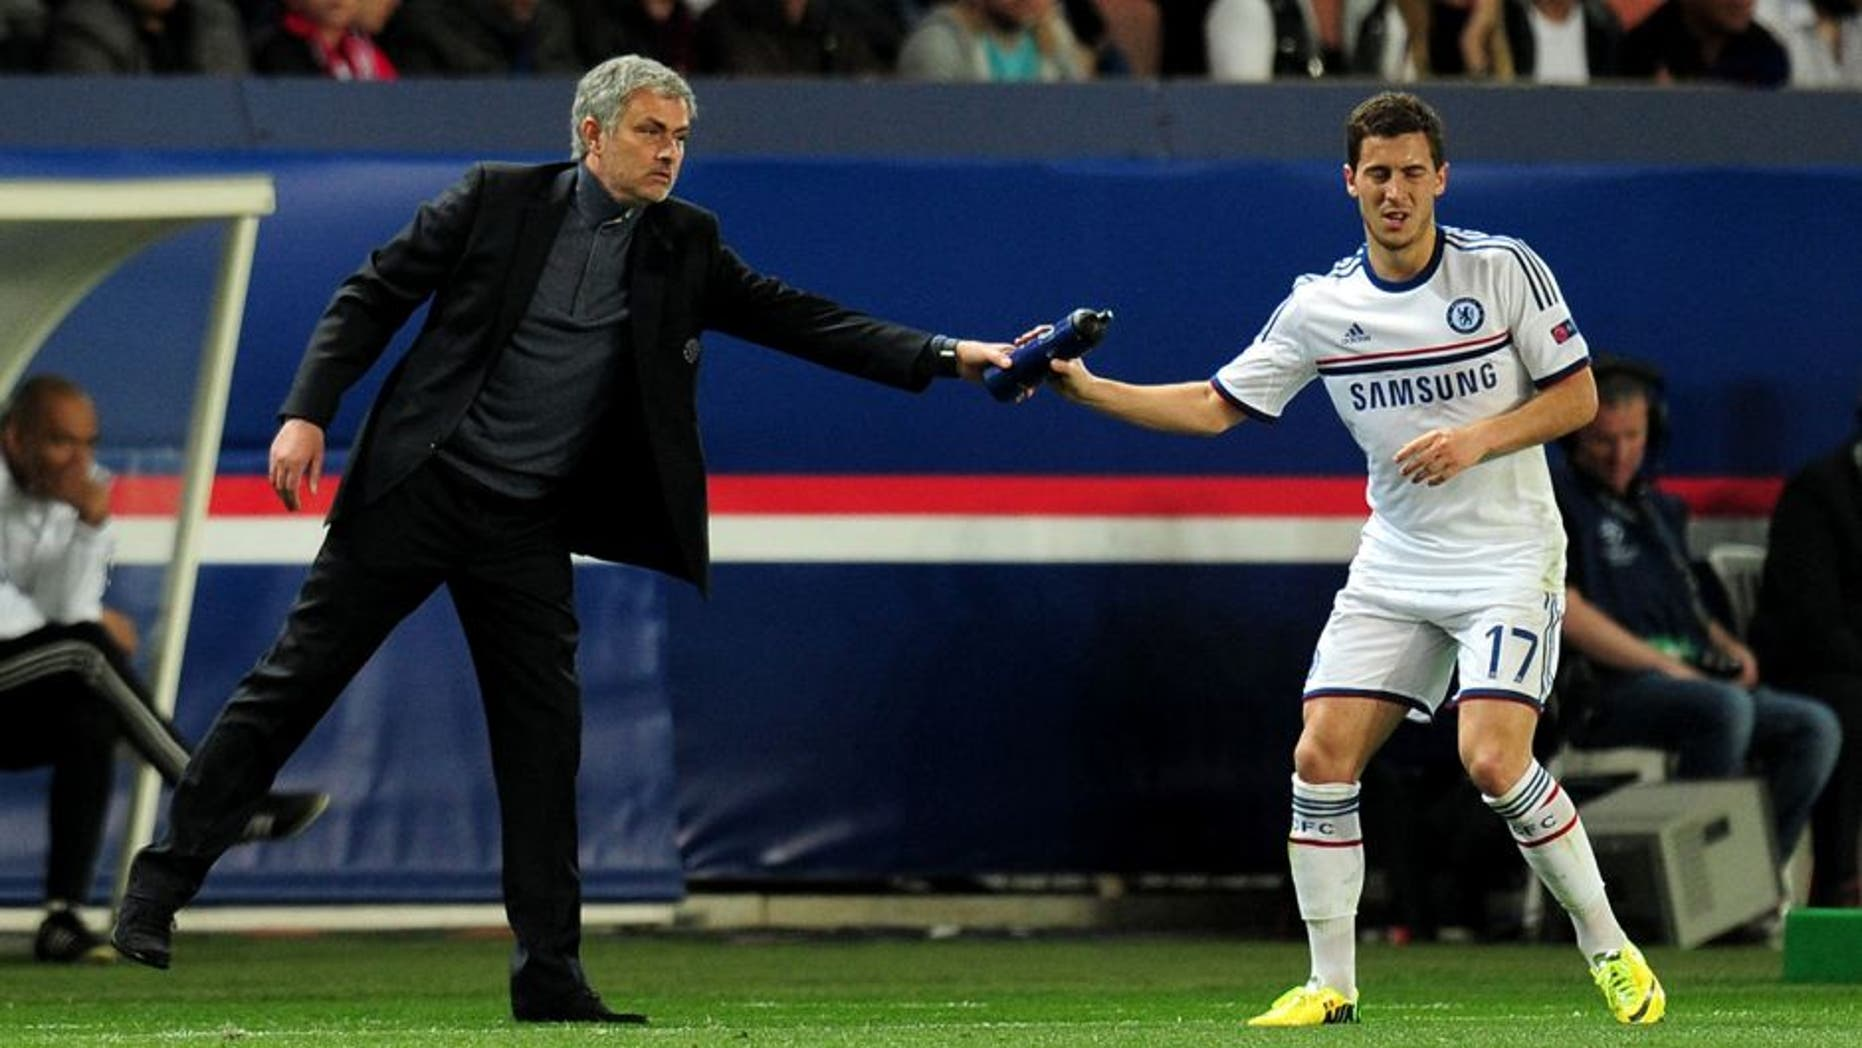 PARIS, FRANCE - APRIL 02: Jose Mourinho the Chelsea manager hands a water bottle to Eden Hazard of Chelsea during the UEFA Champions League quarter final, first leg match between Paris Saint Germain and Chelsea at Parc des Princes on April 2, 2014 in Paris, France. (Photo by Shaun Botterill/Getty Images)